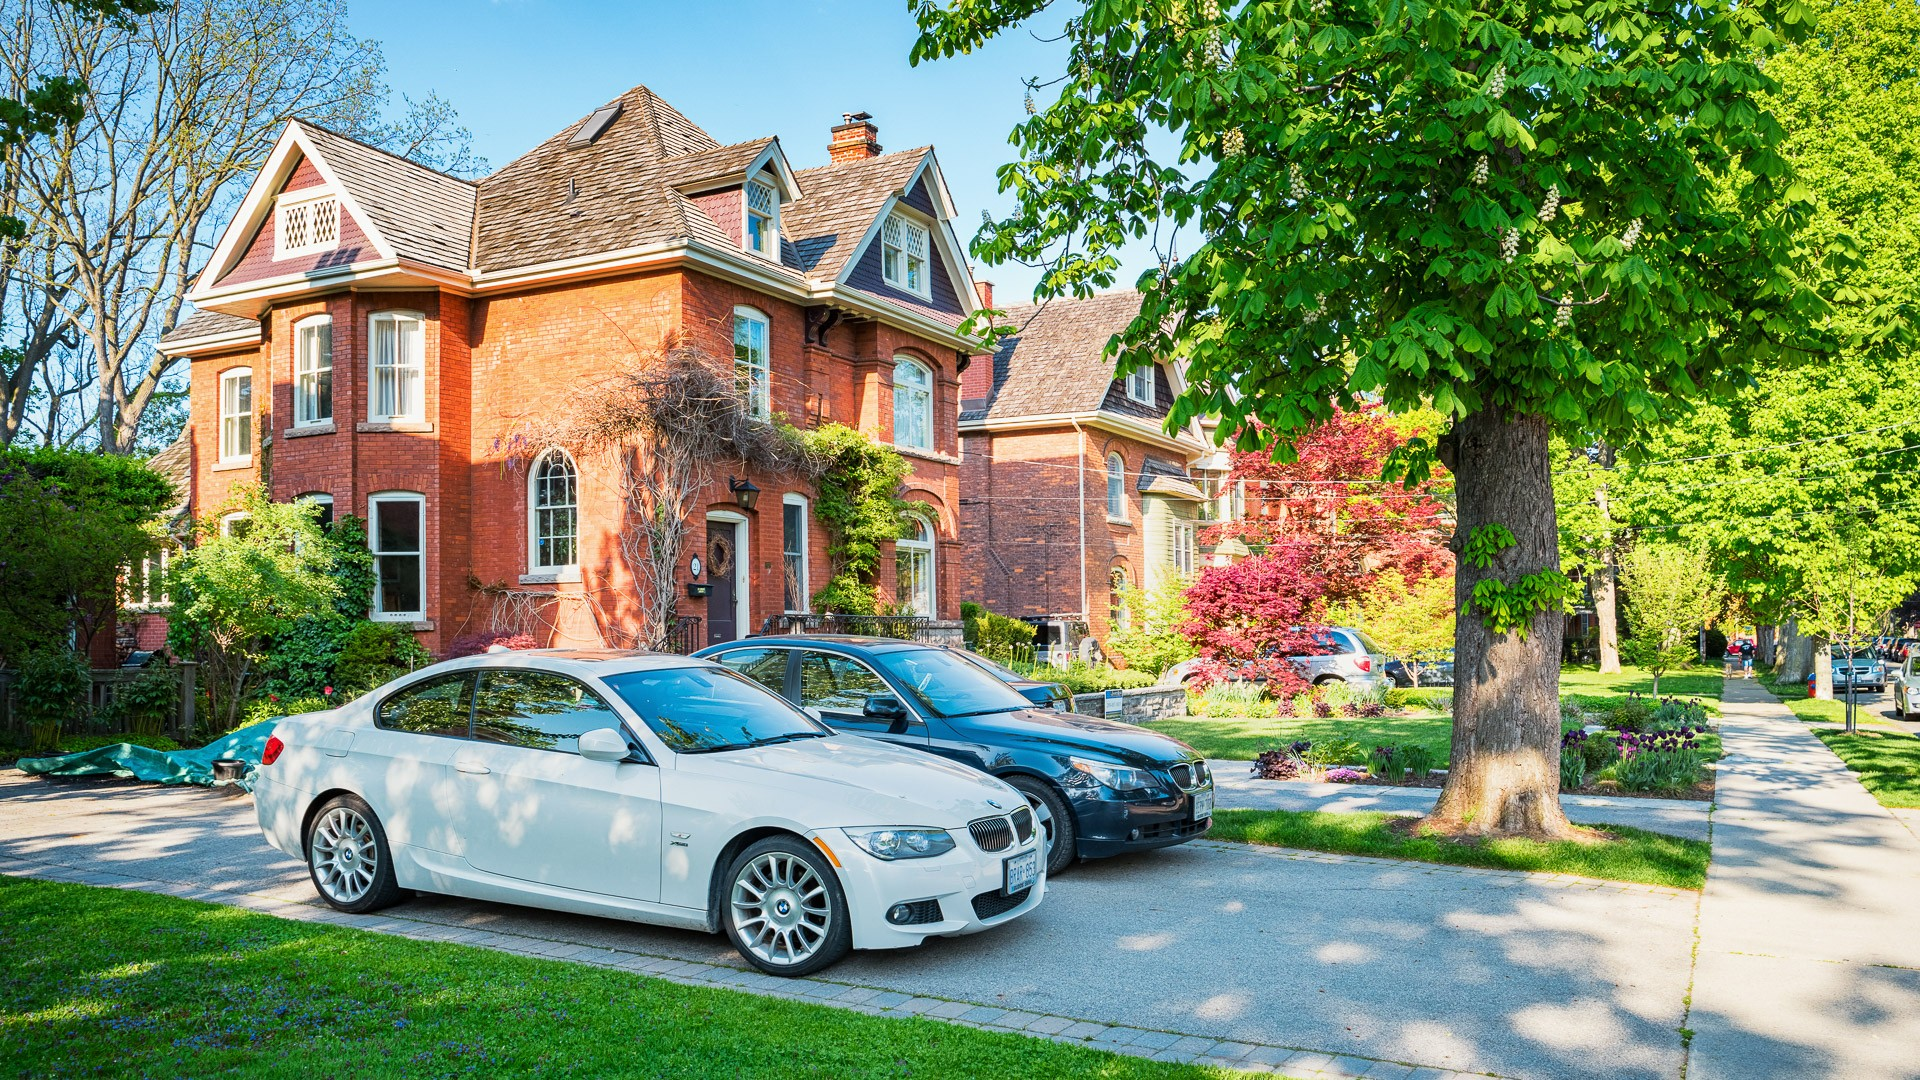 Hamilton, Canada - May 22, 2016: Large houses, luxury cars and mature trees in the downtown historic neighbourhood of Dundas in Hamilton, Ontario, Canada.